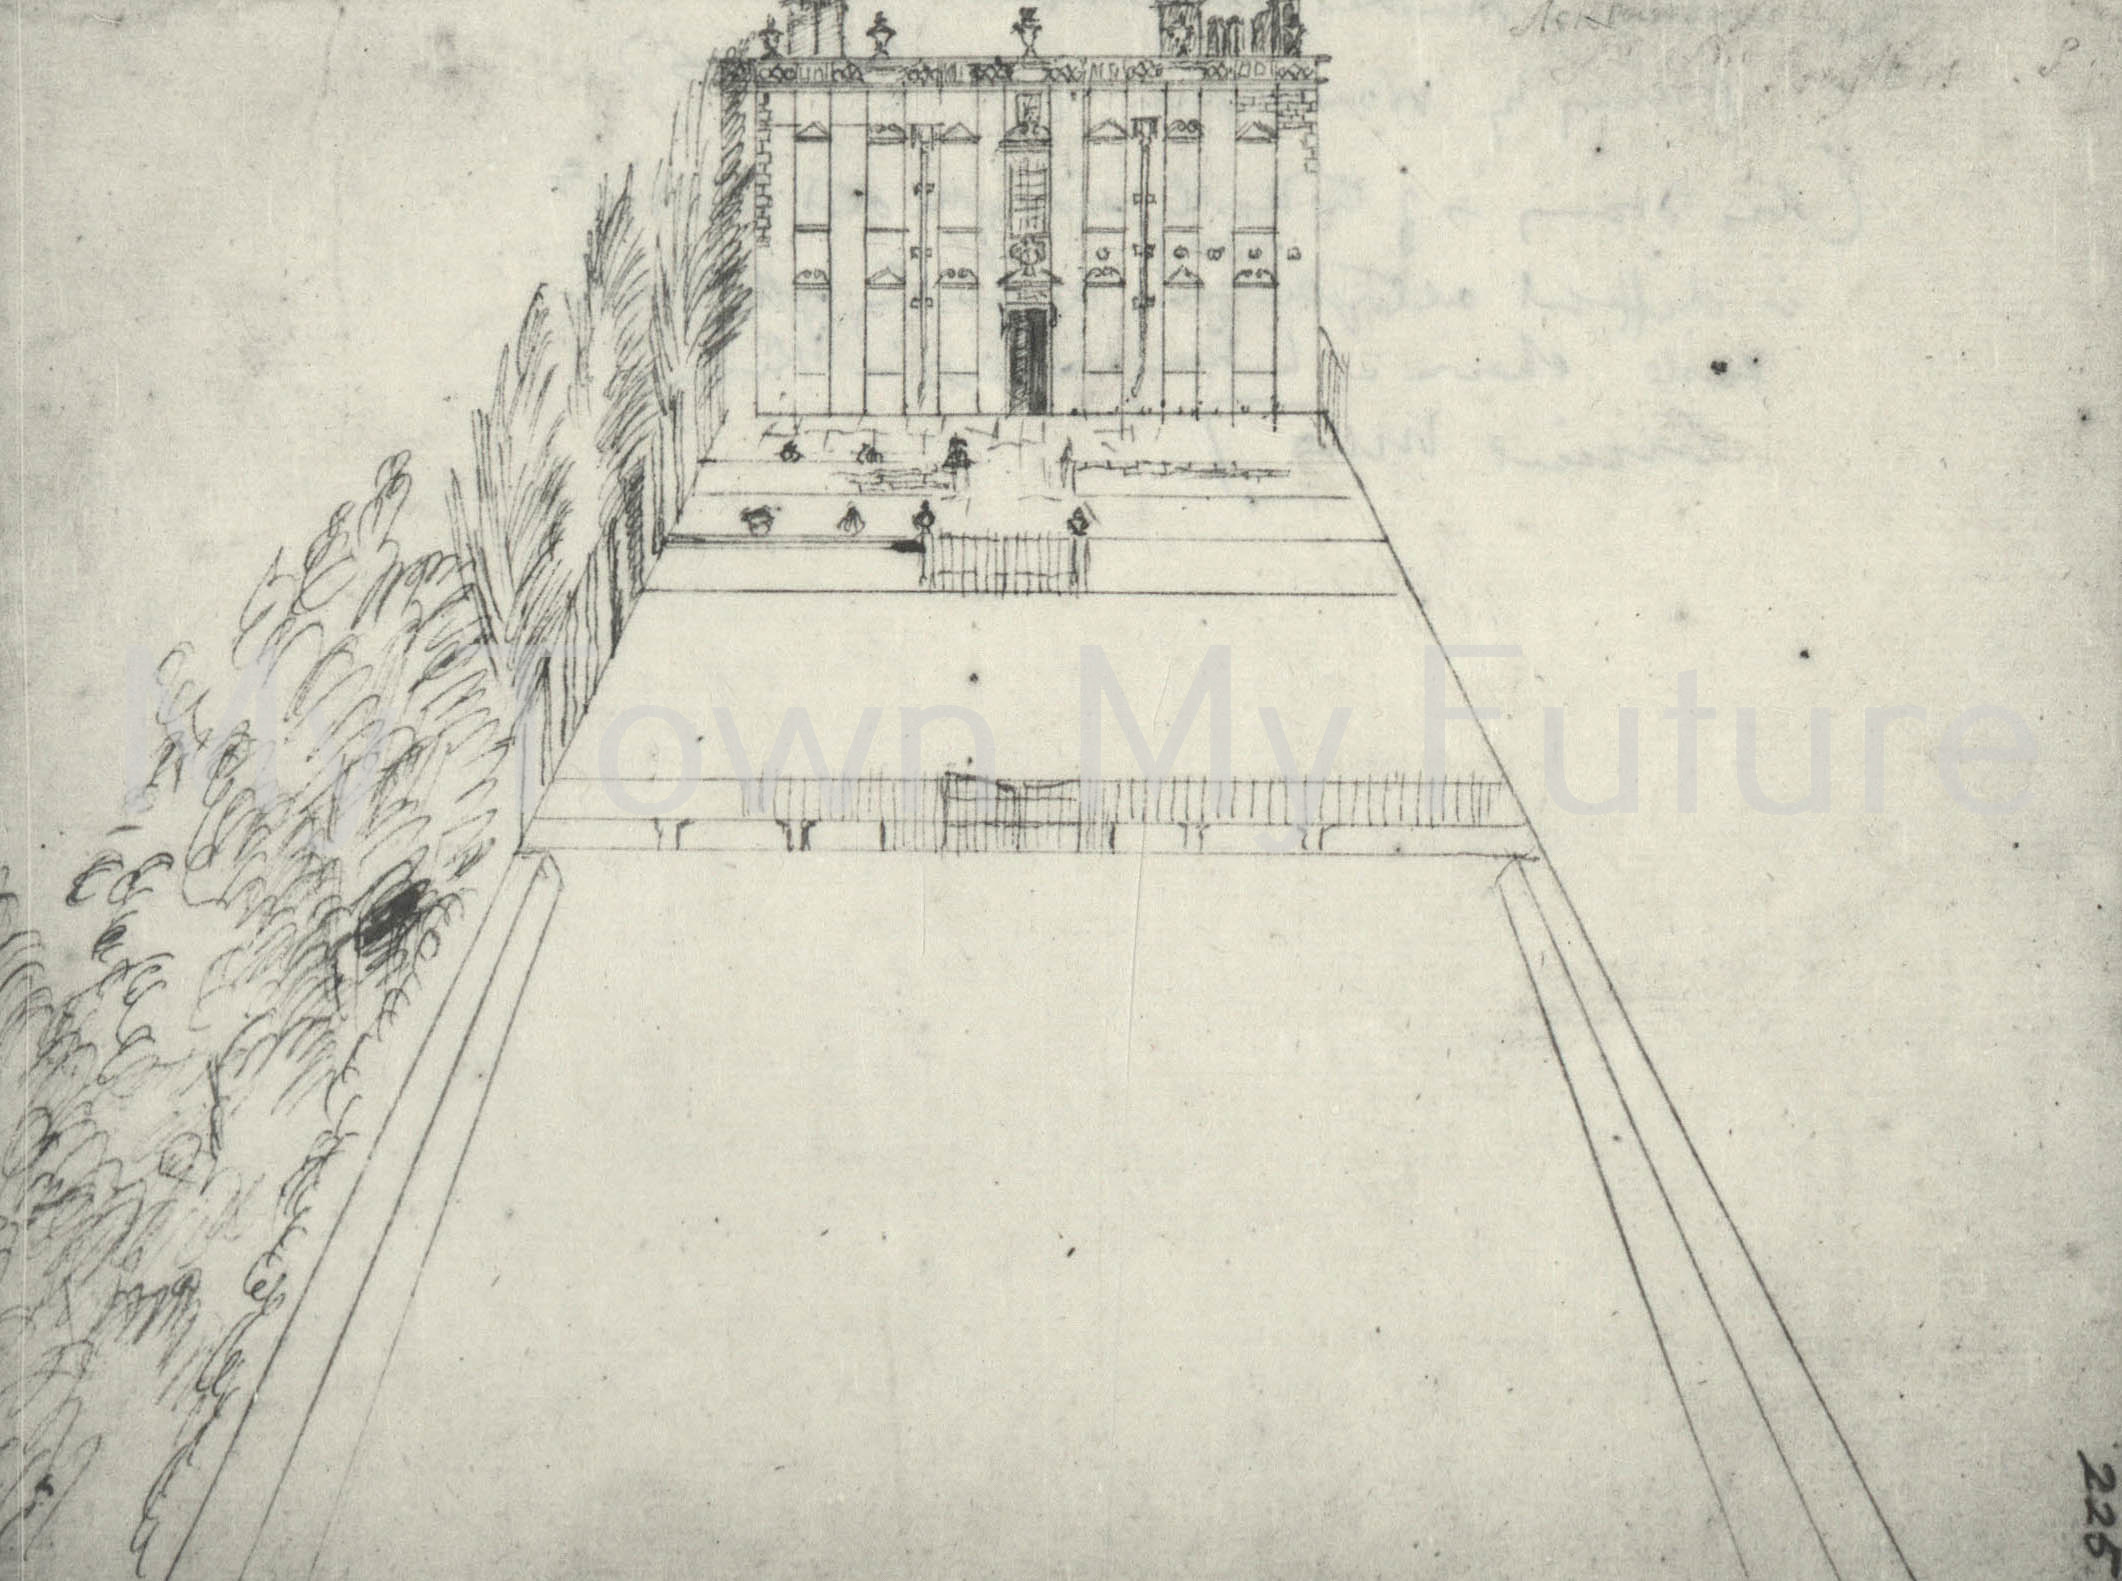 Drawing of Acklam Hall